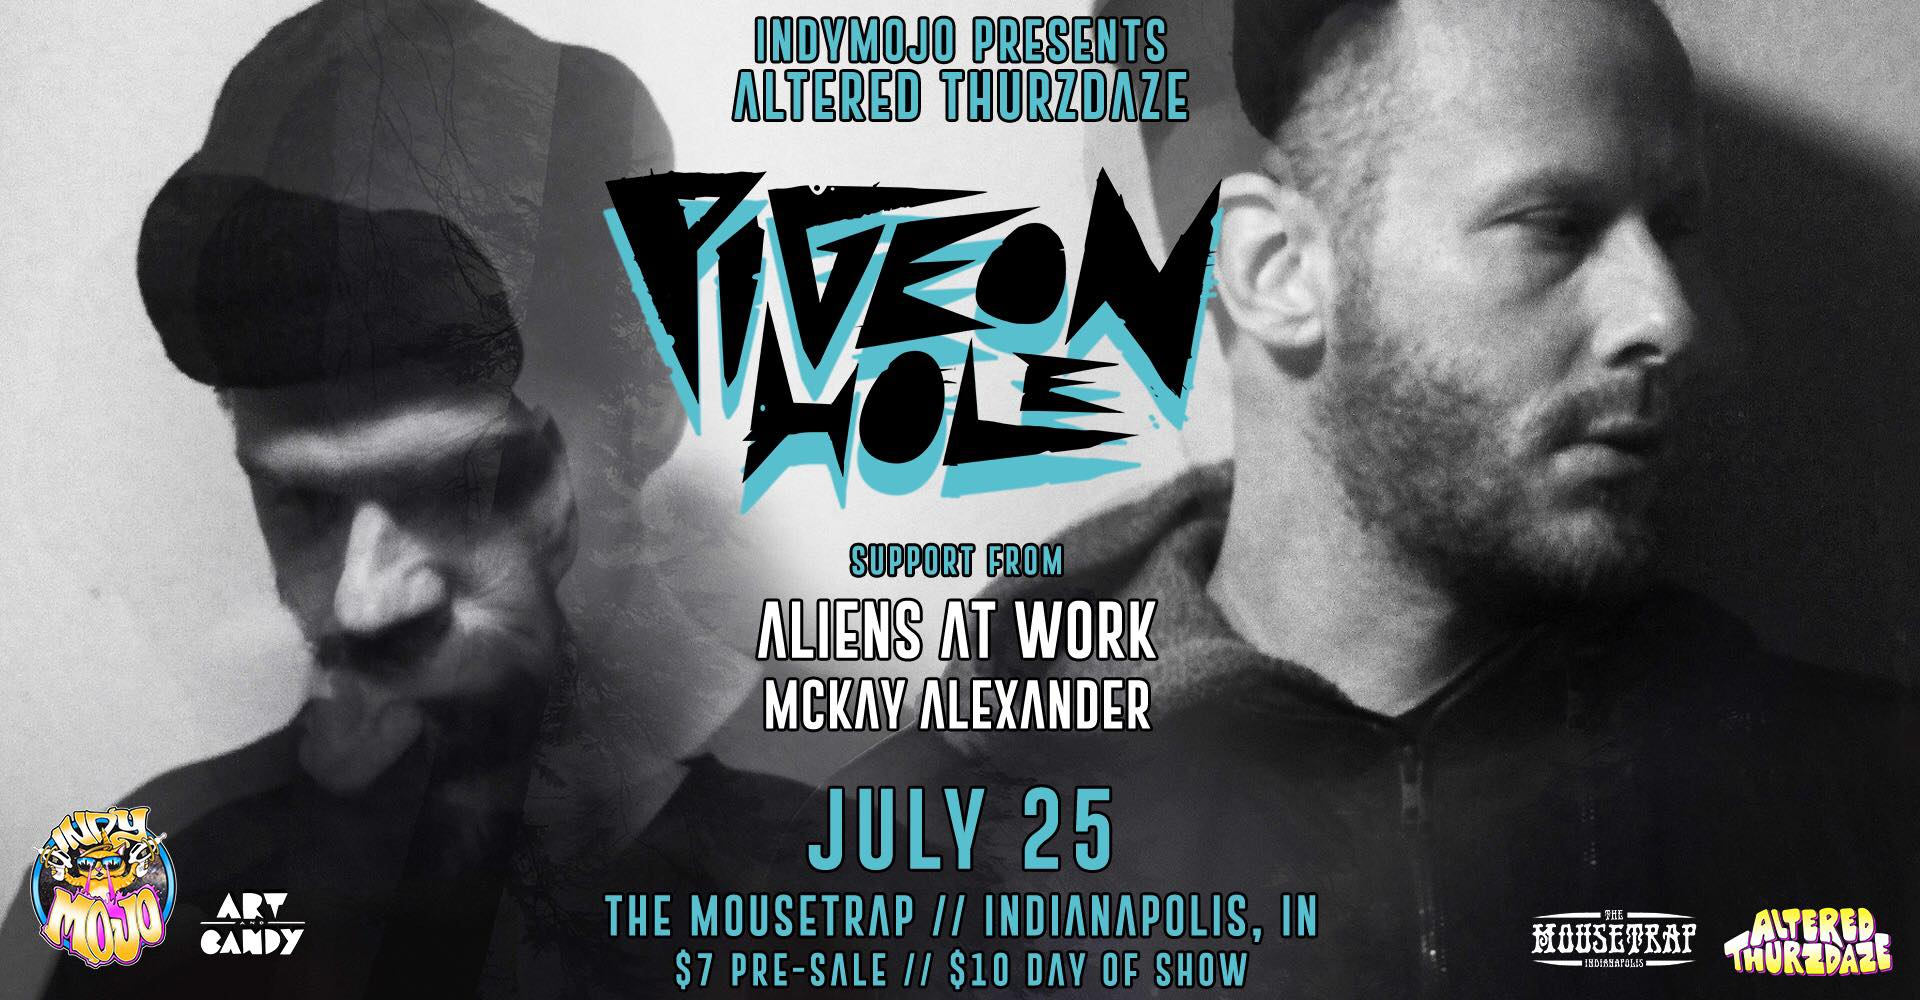 Altered Thurzdaze w/ Pigeon Hole - Thursday, July 25th